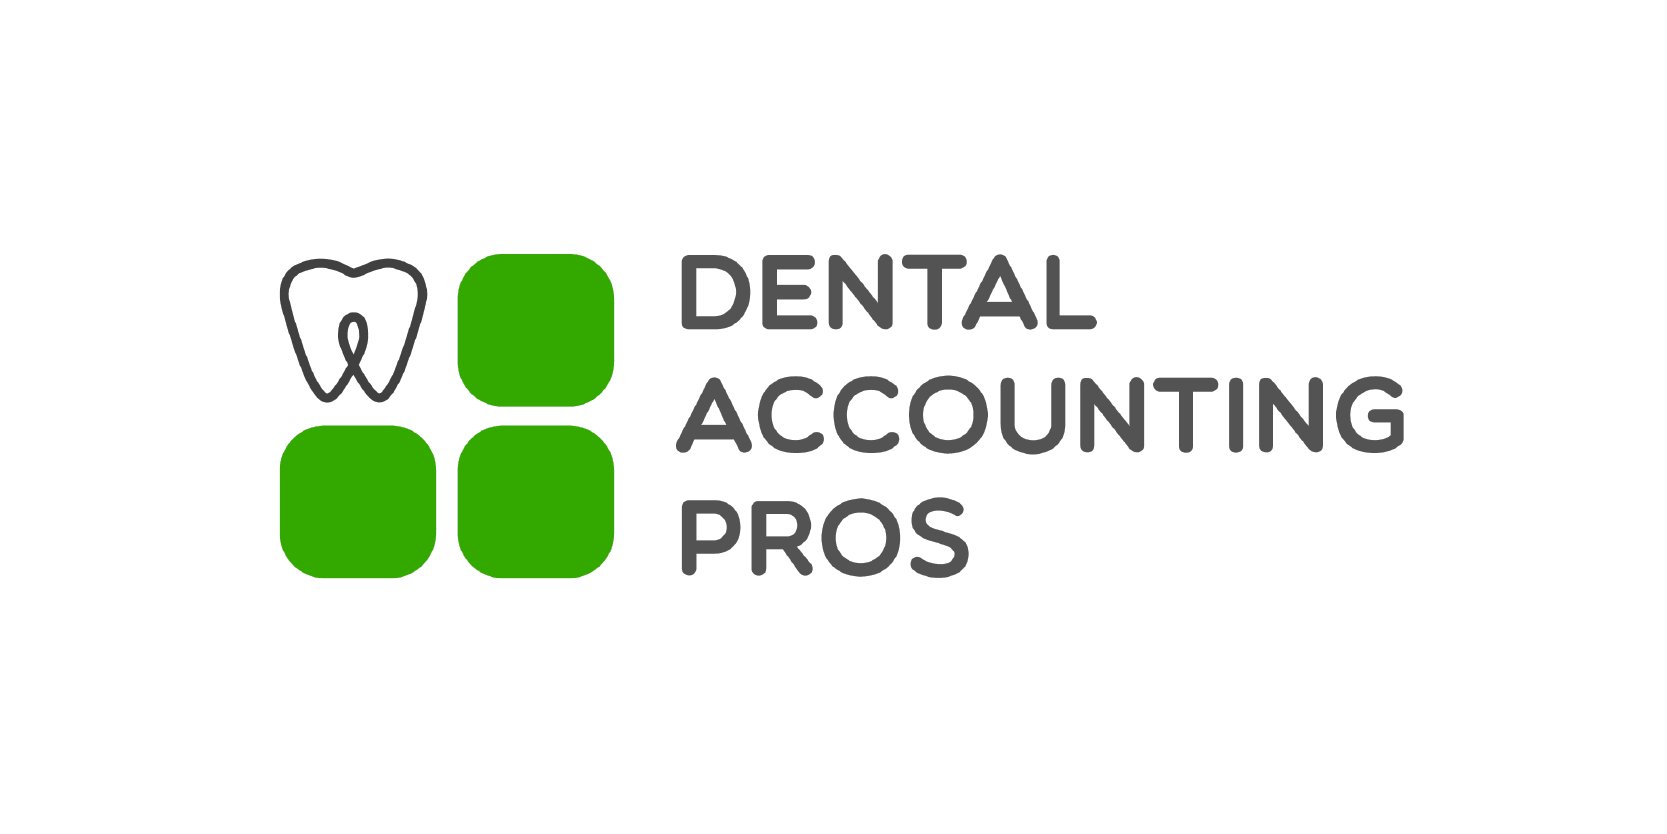 - Bookkeeping services designed by CPAs for dentists. We provide customized, fixed-fee bookkeeping solutions for dental practice owners to better monitor, manage and improve operating performance and profitability. Now offering insurance credentialing for dentists starting up or buying an existing practice!